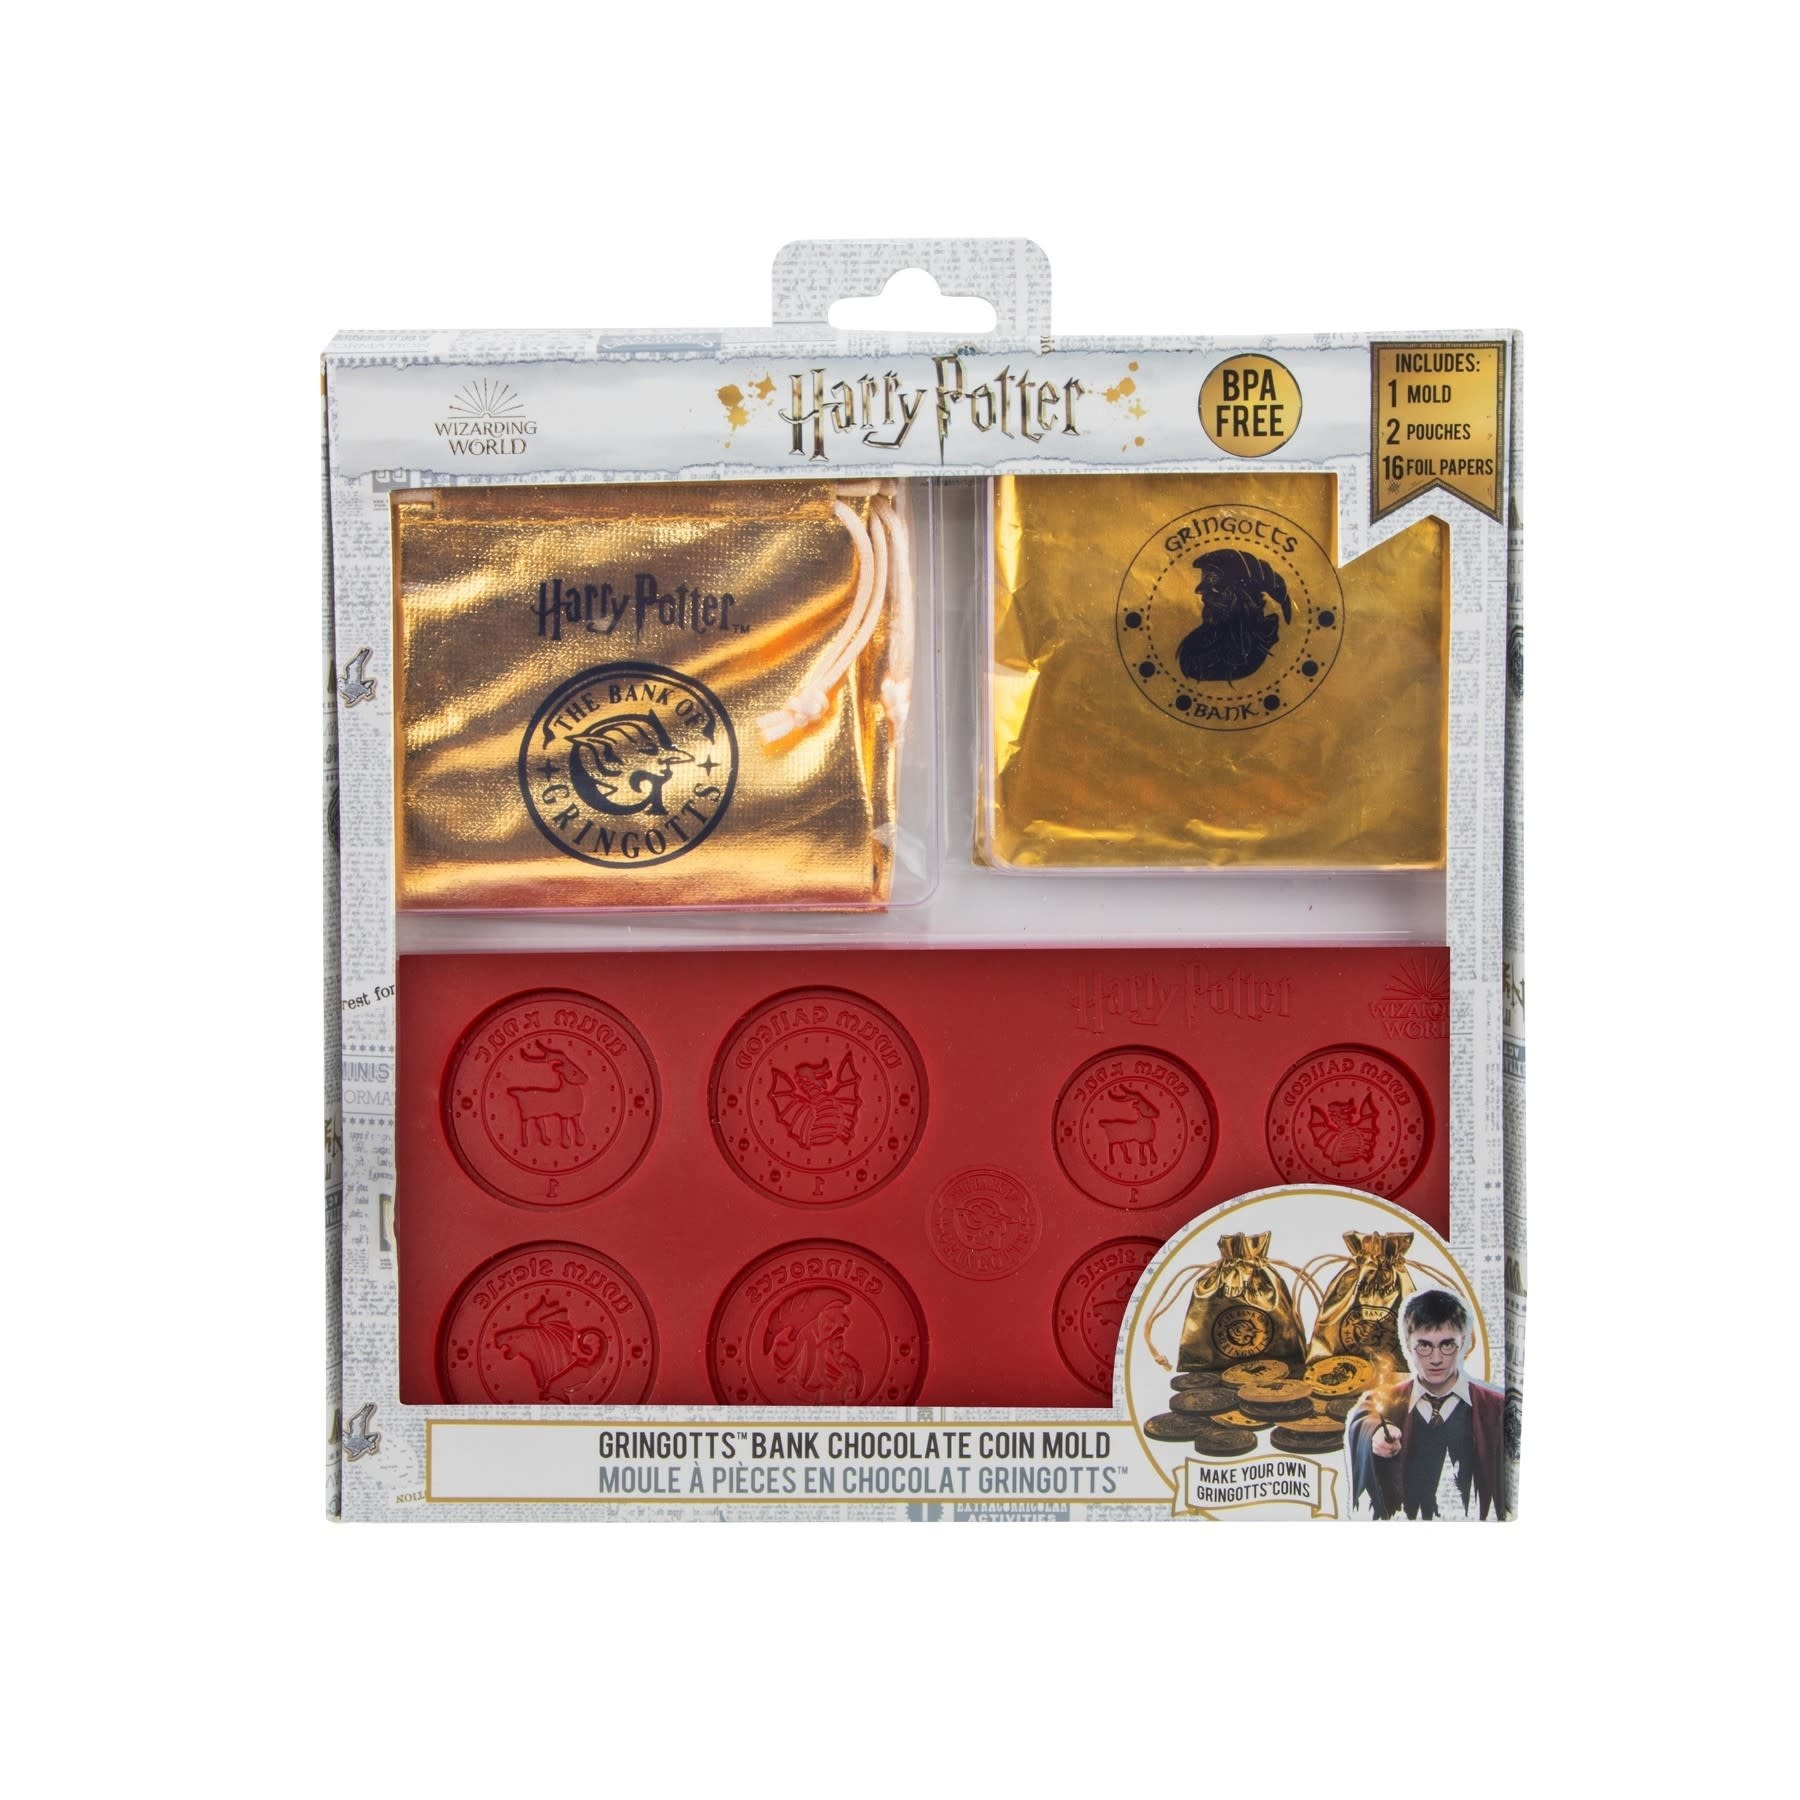 fame bros Harry Potter: Gringotts Bank Chocolate Coin Mold